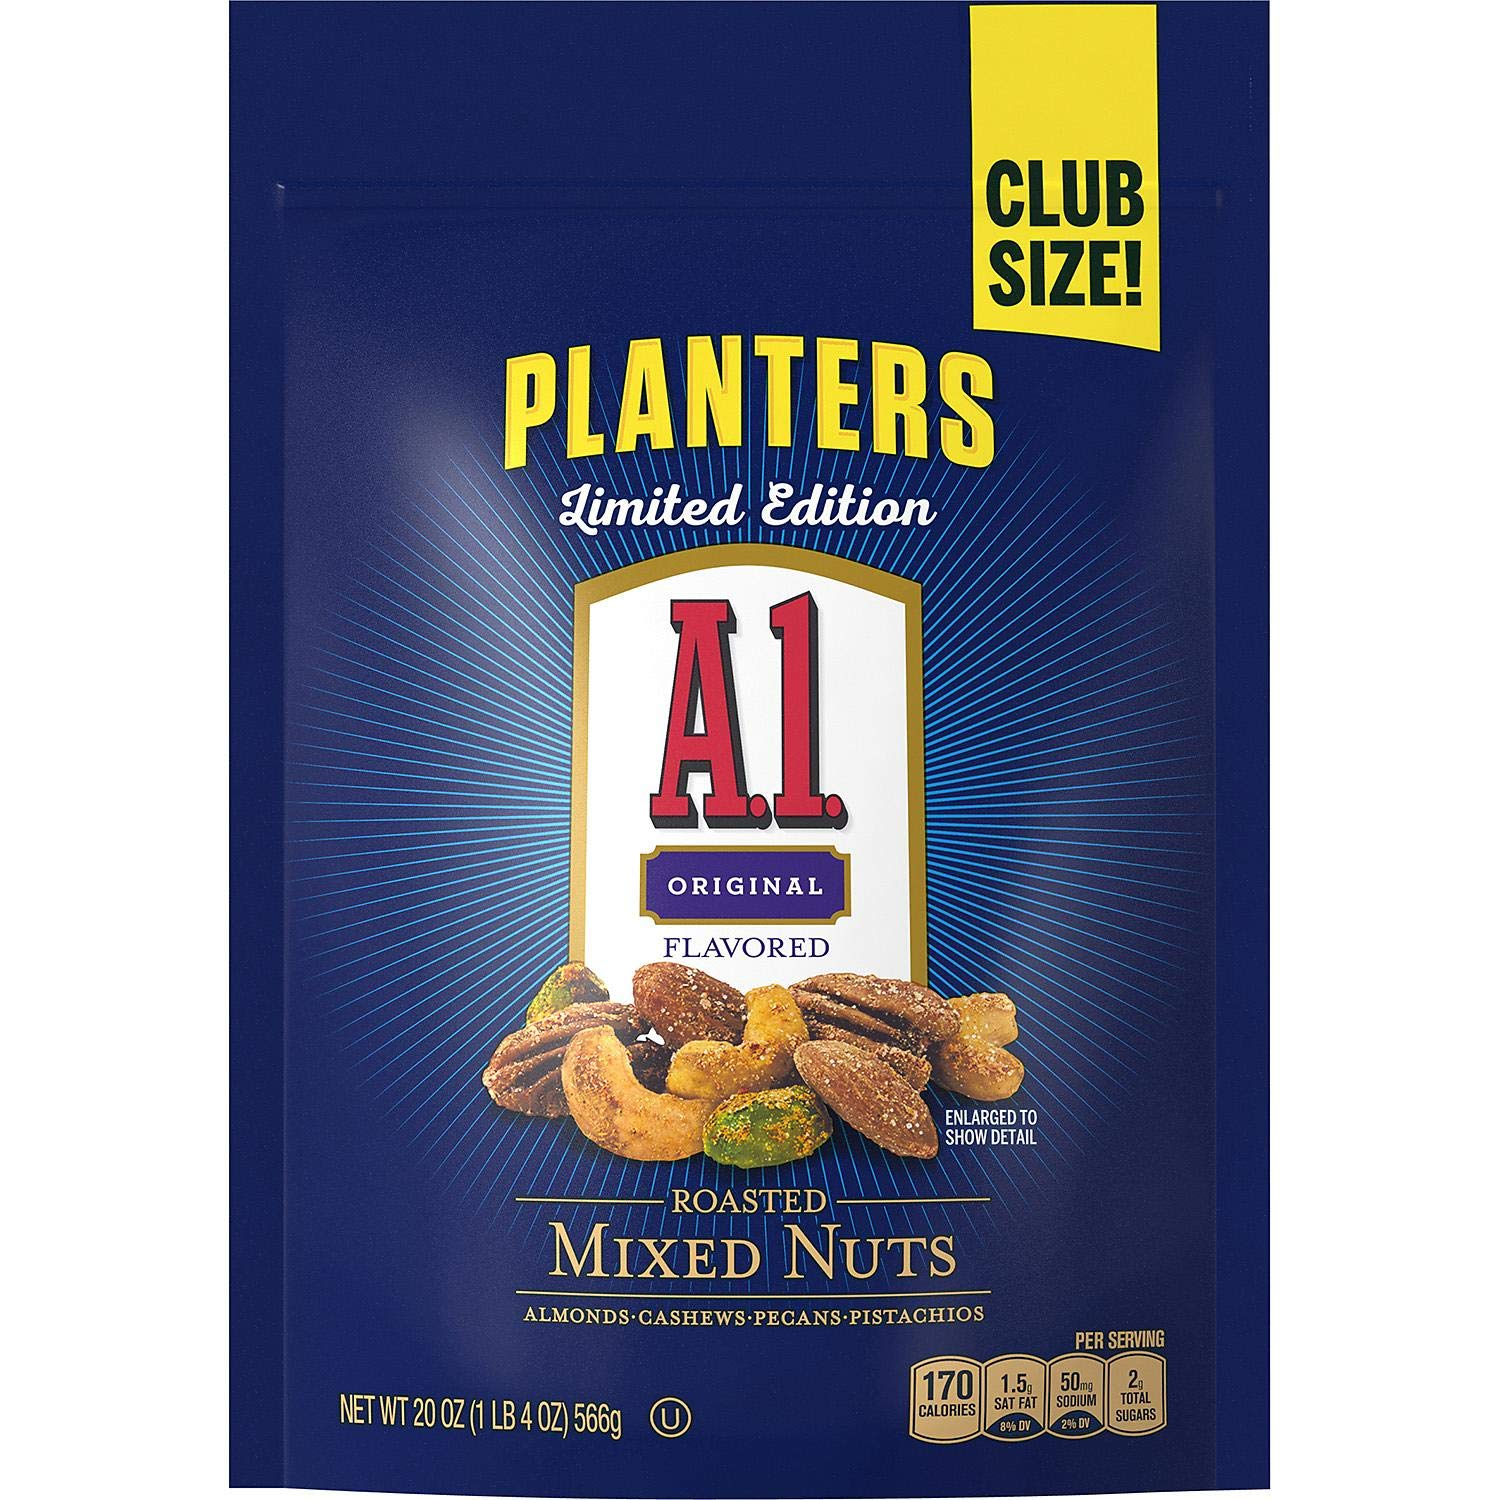 Planters A.1. Limited Edition Original Flavored Roasted Mixed Nuts in Large Resealable Bag - 20 oz by A1 Planters